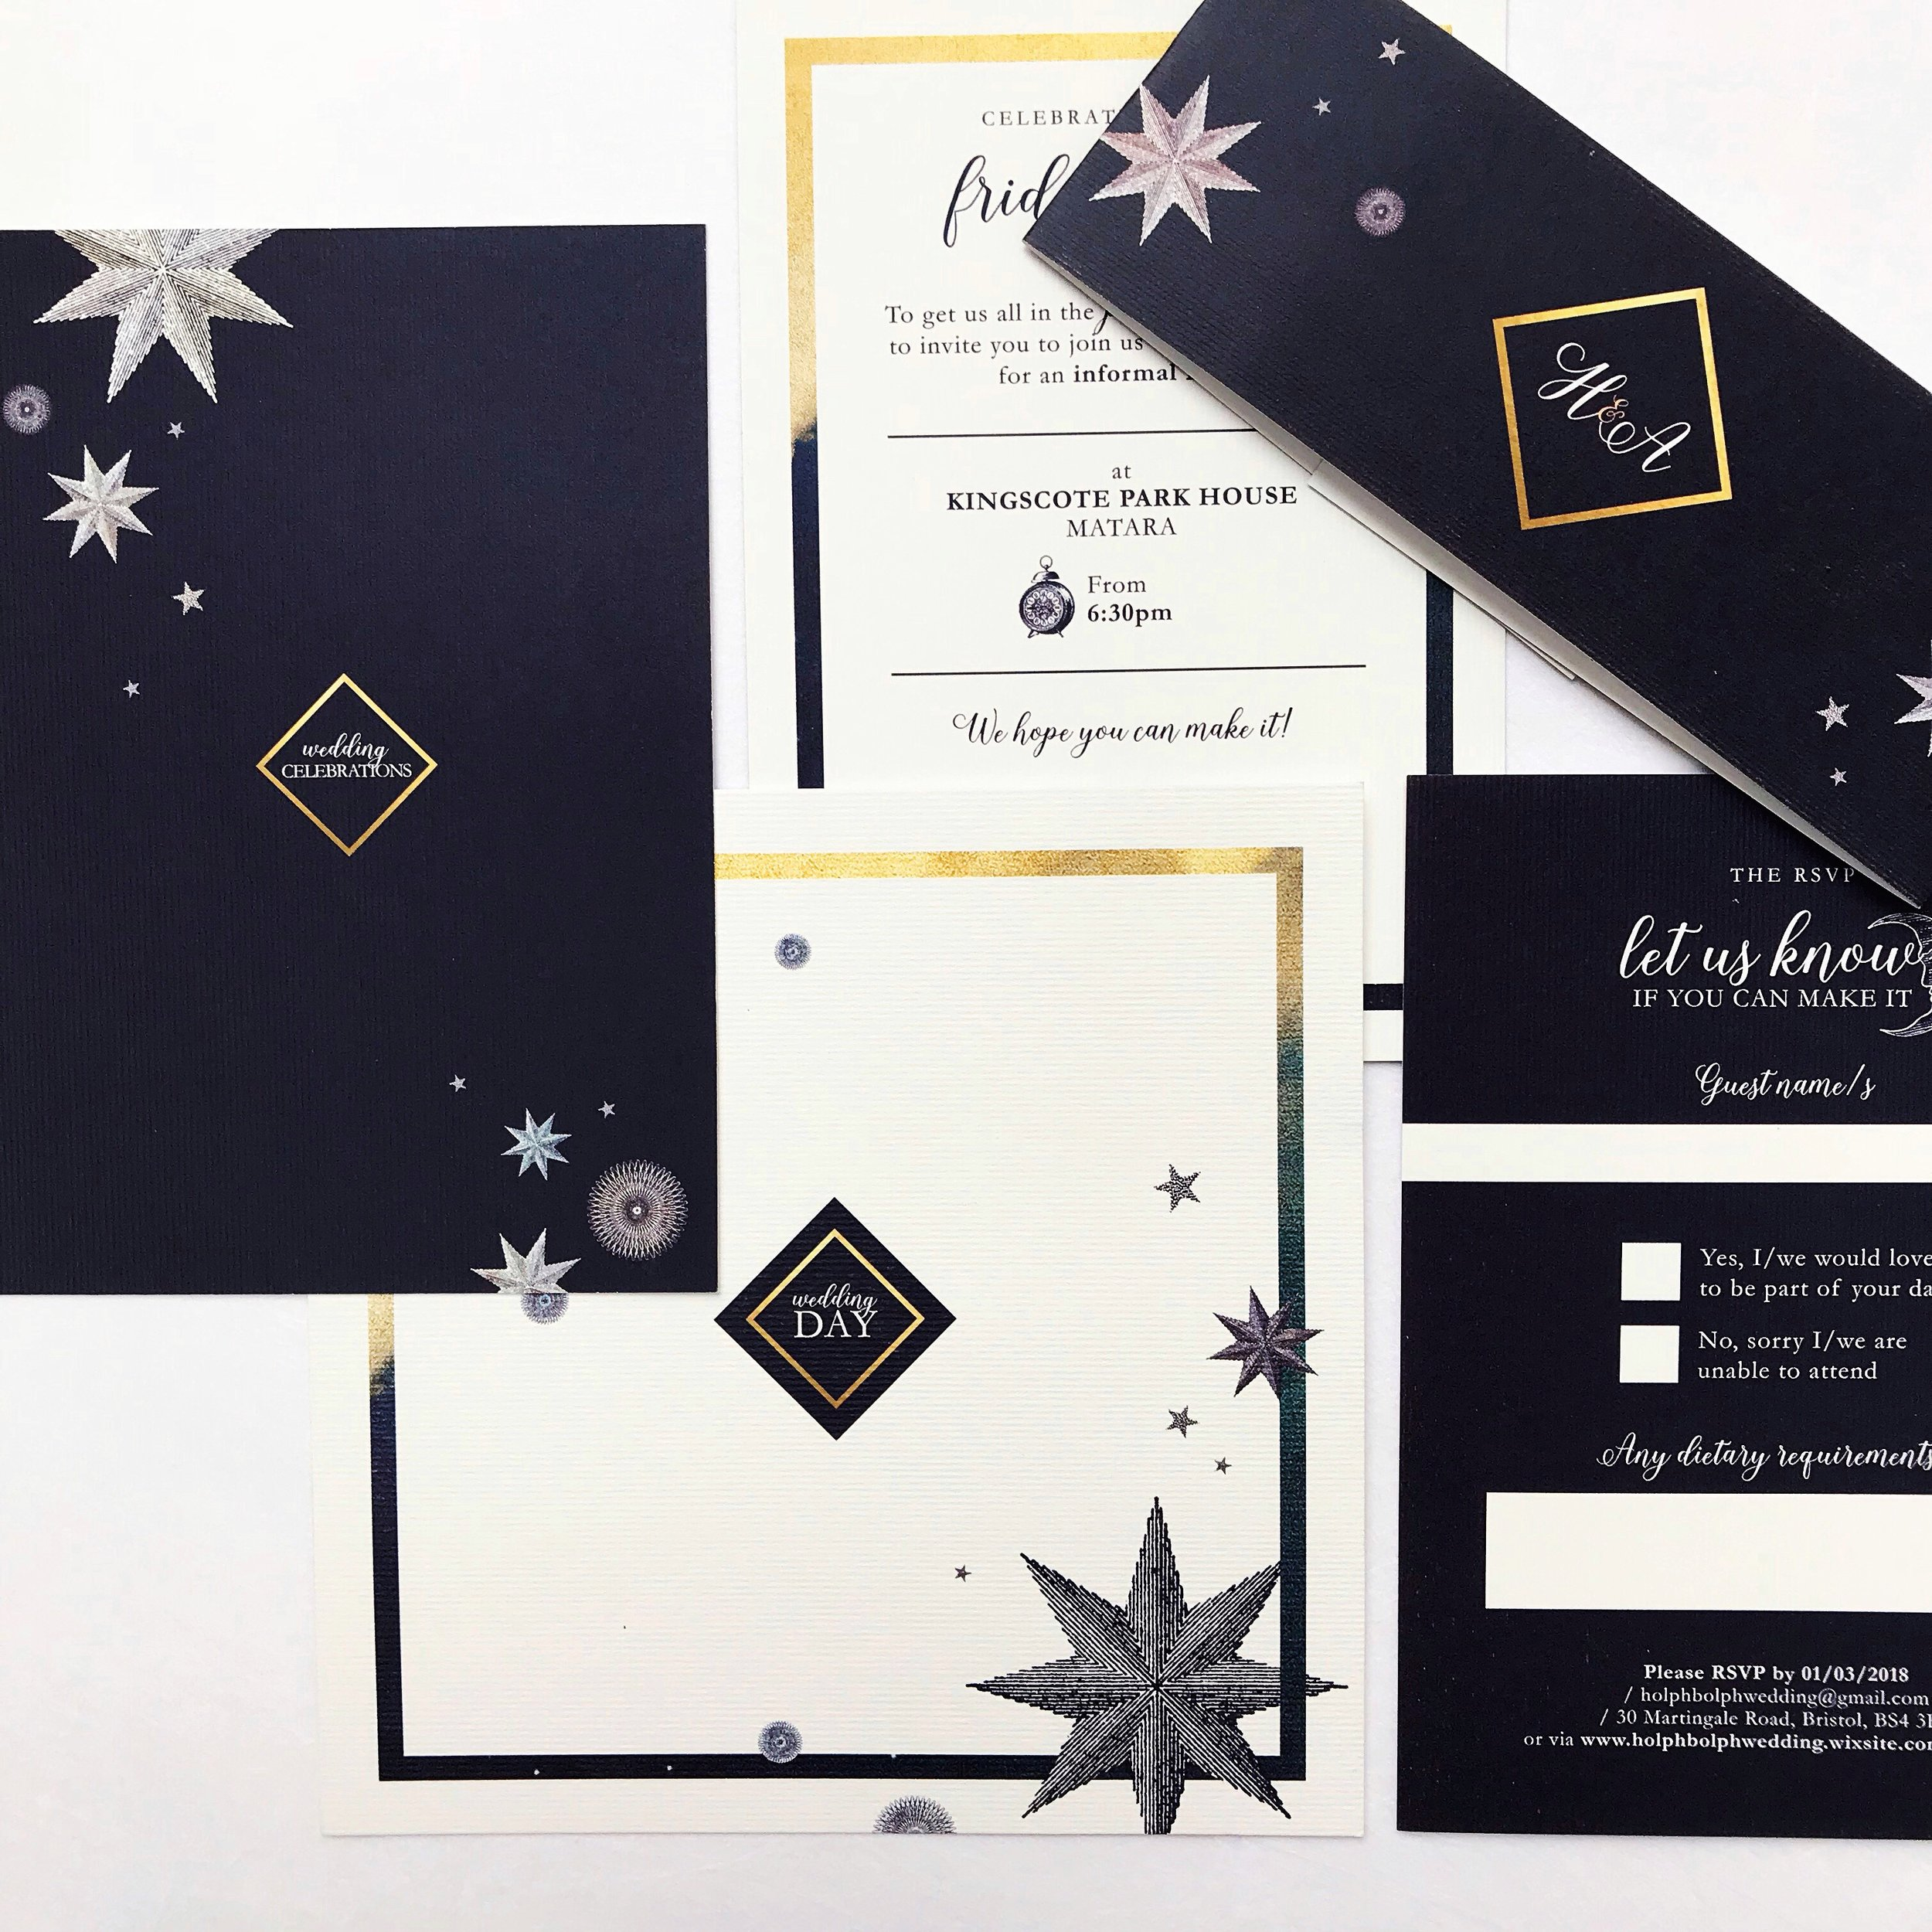 theinkcloset-wedding-invite-midnight-stars-matara-inspo-blog-4.jpg